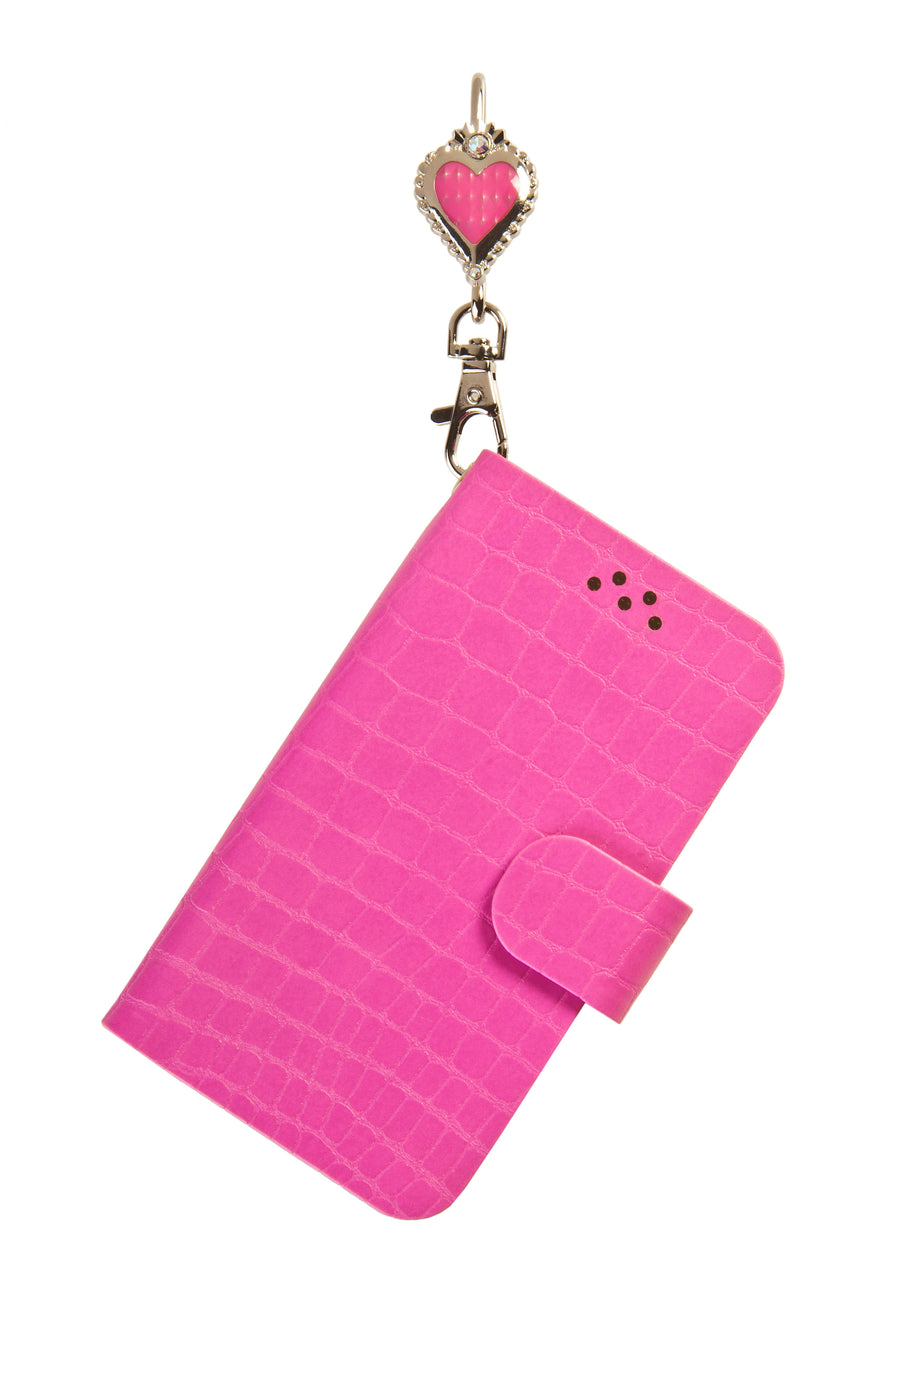 Pink Phone Key'Purse Diary Case with Queen of Hearts